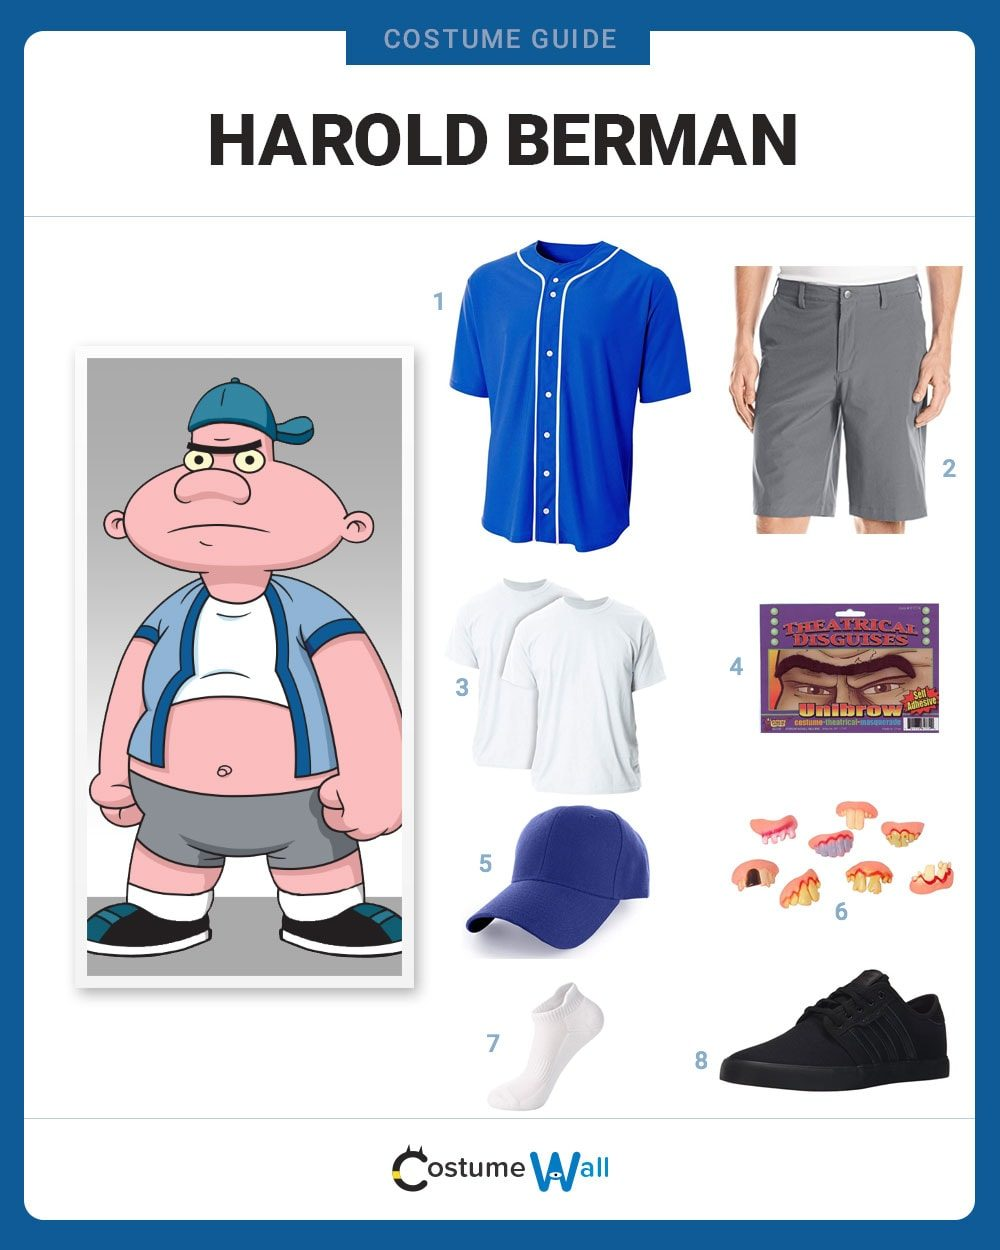 Harold Berman Costume Guide